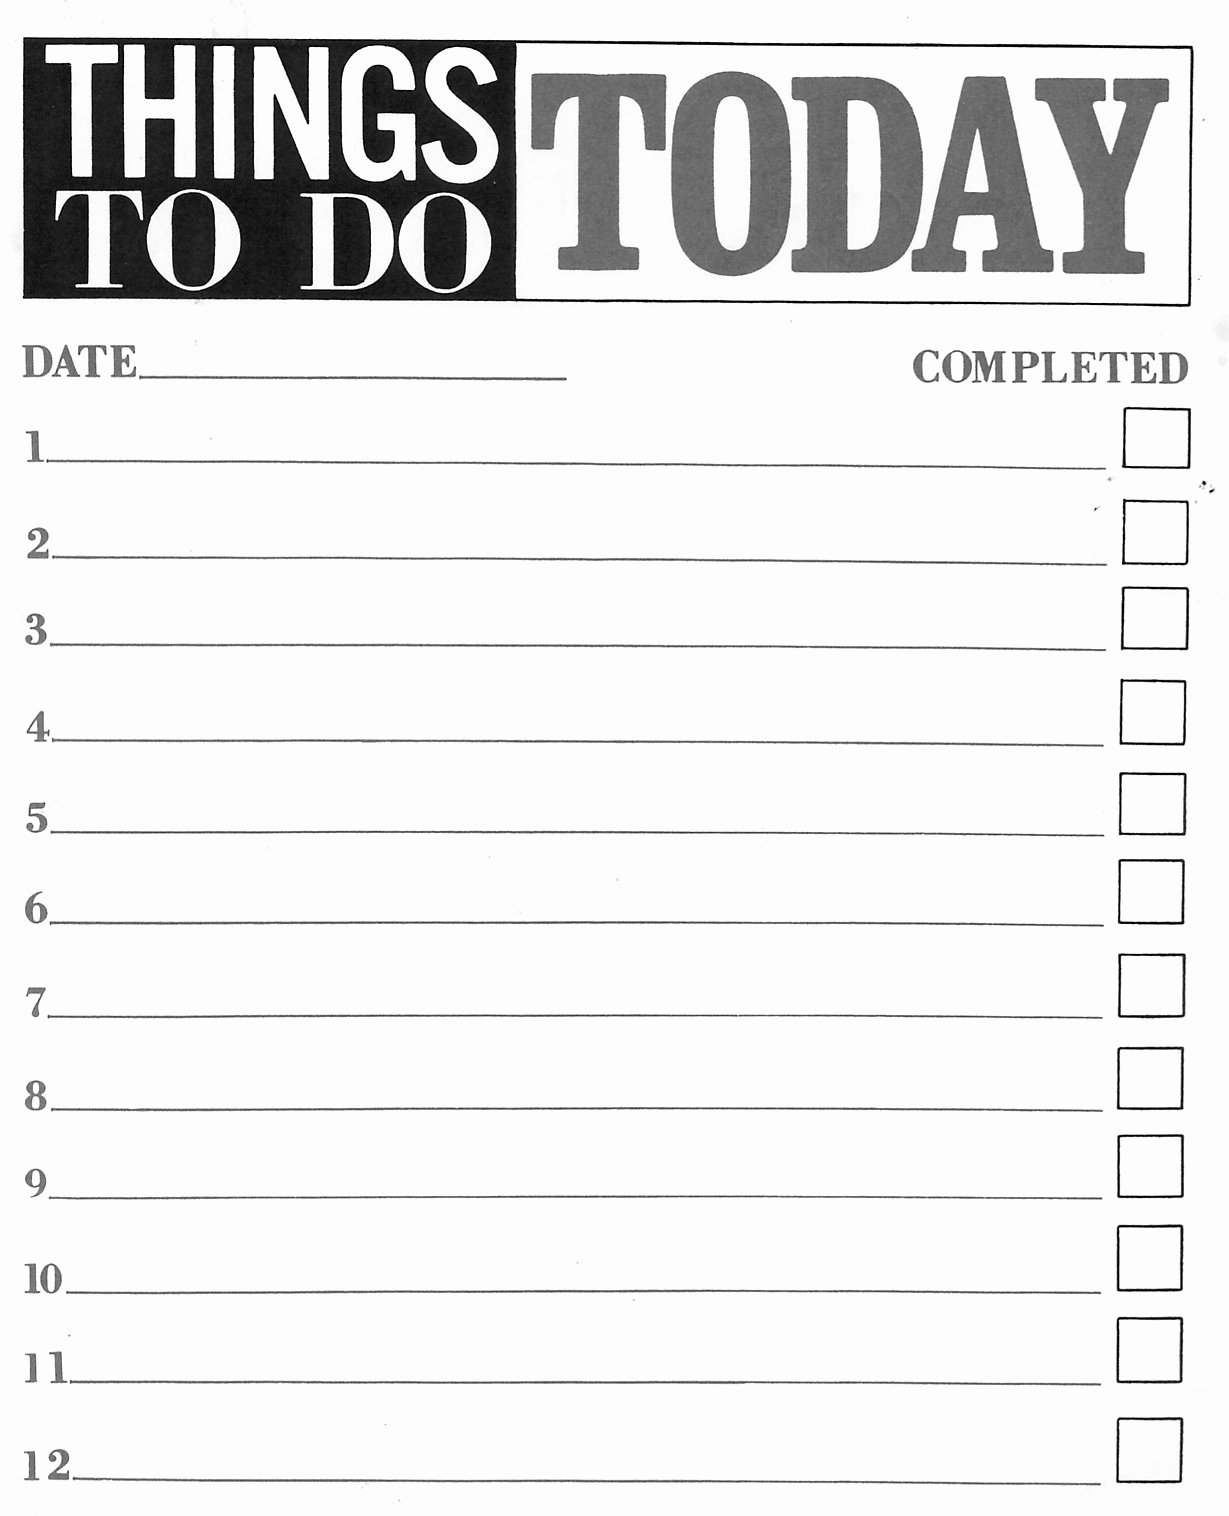 Things to Do Lists Template New Things to Do List Pdf